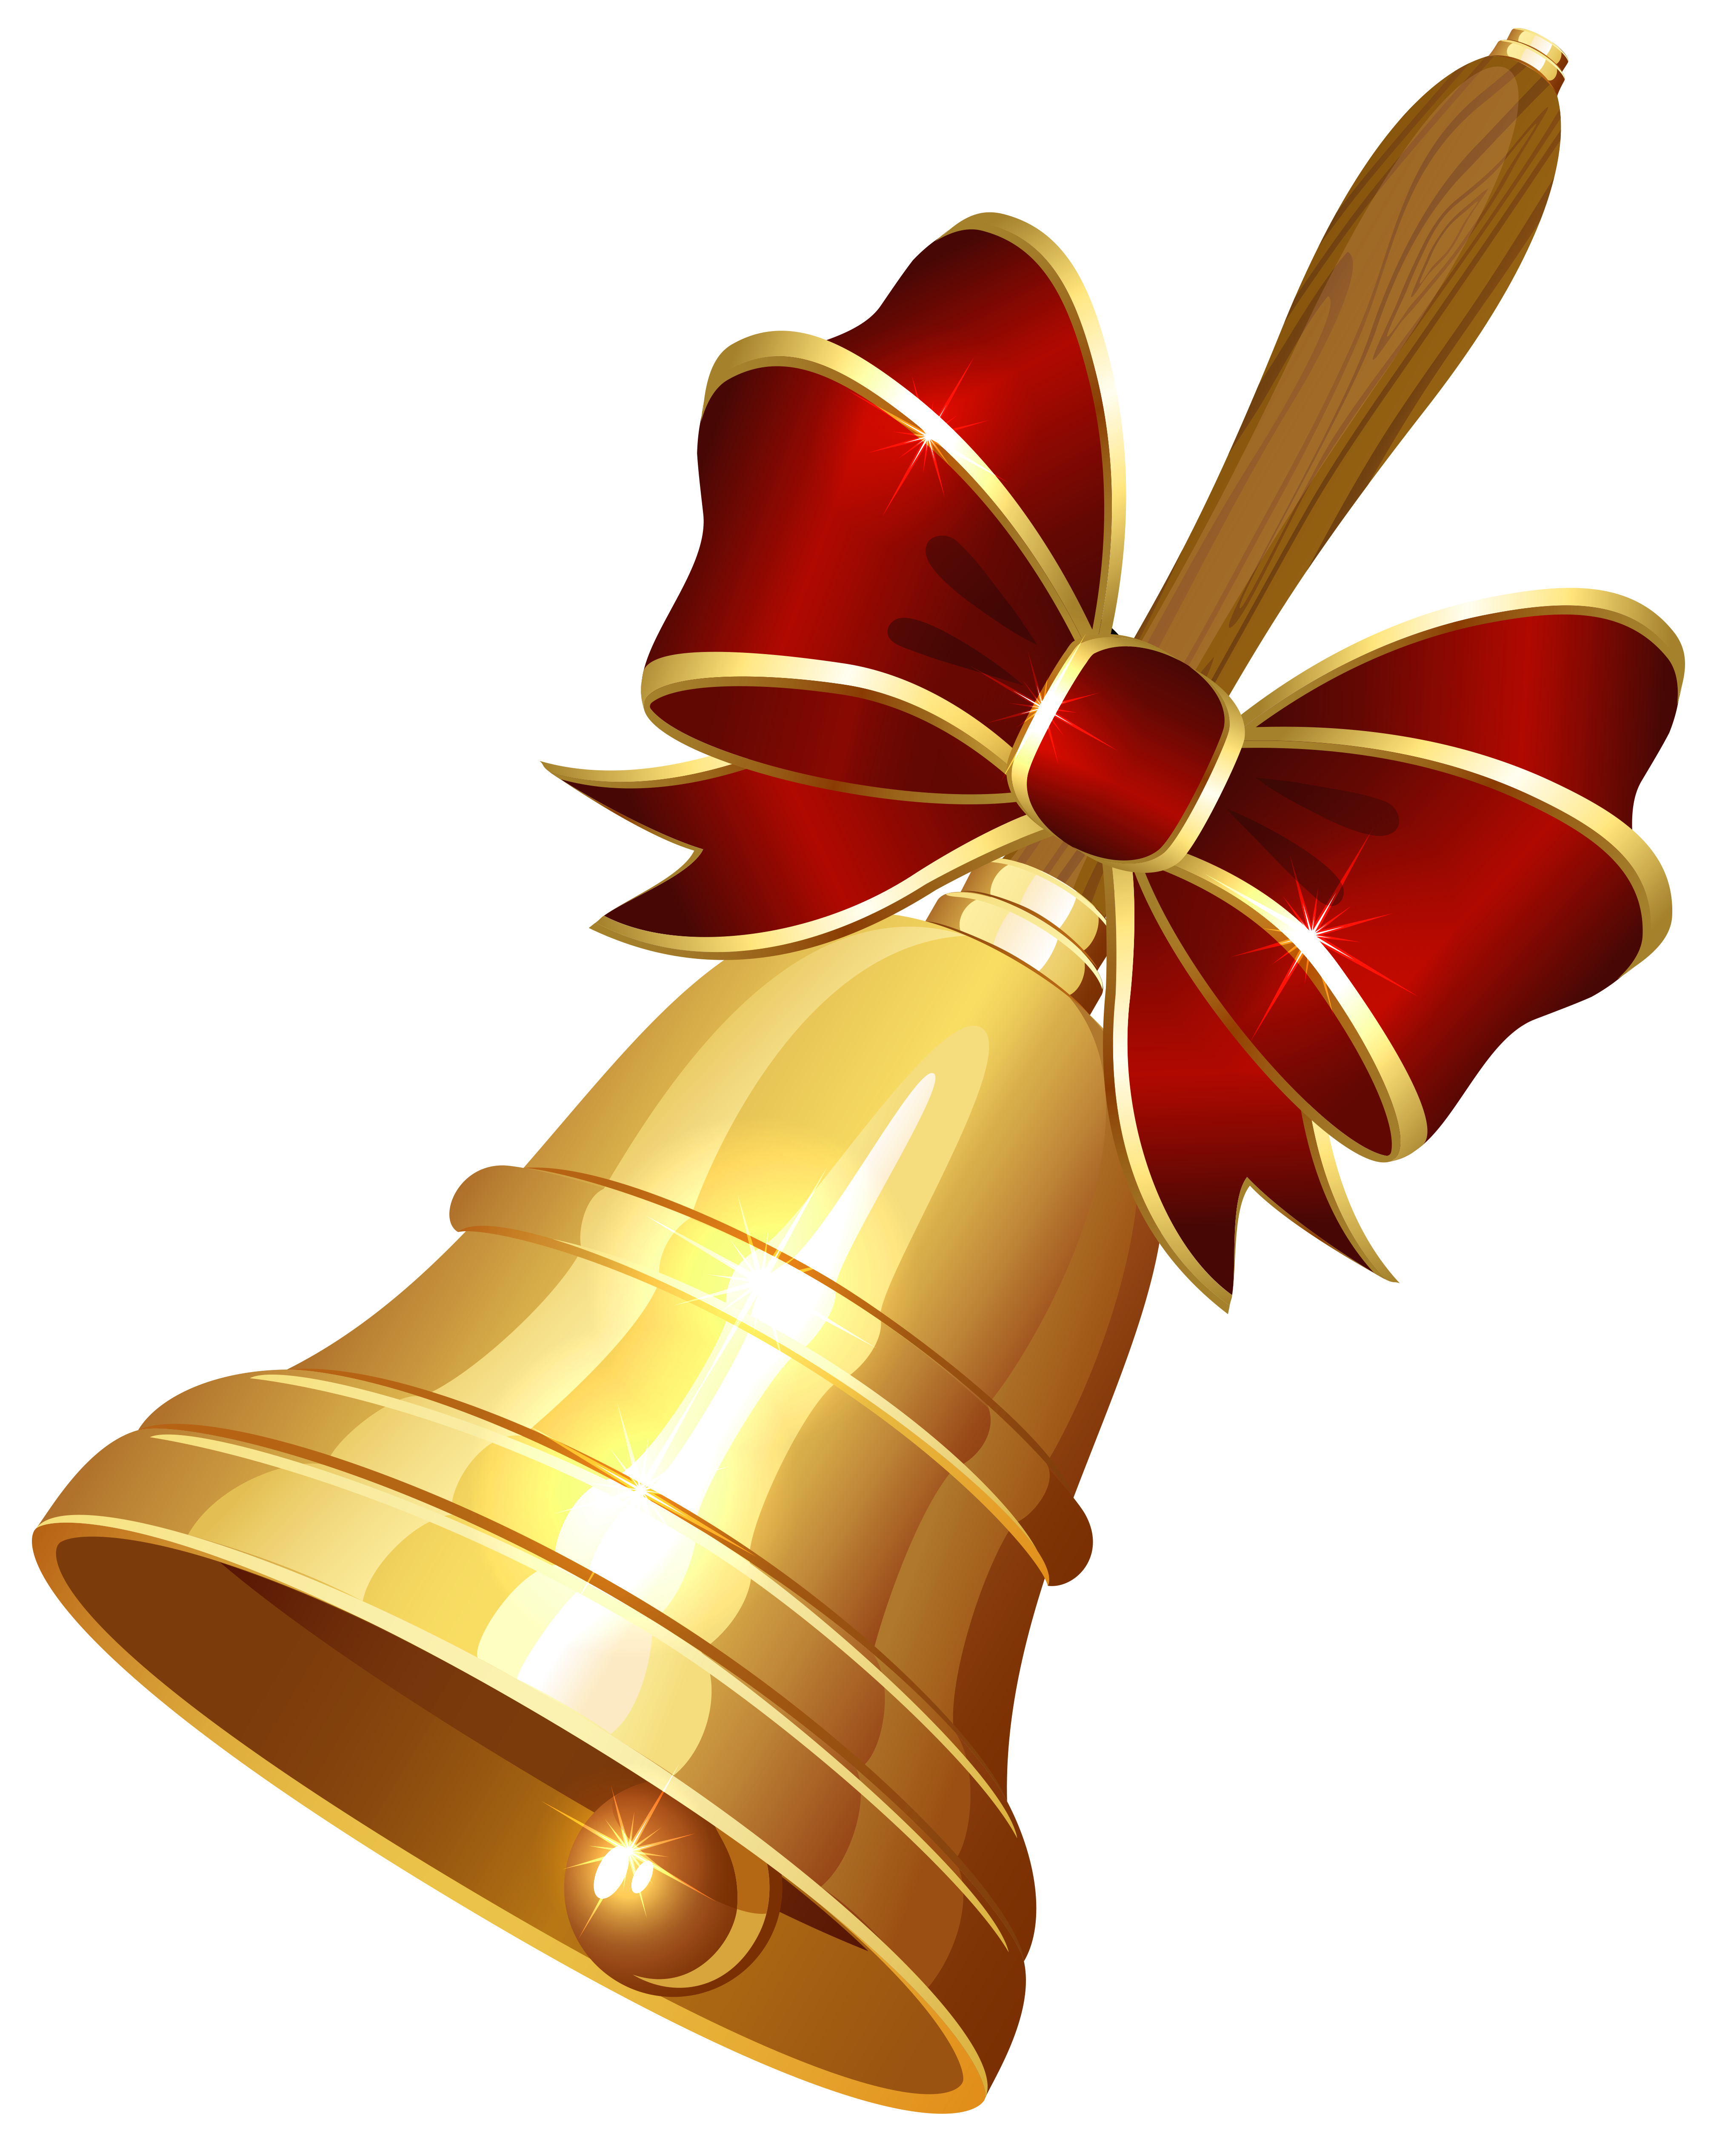 Bell clipart png. Christmas golden image purepng